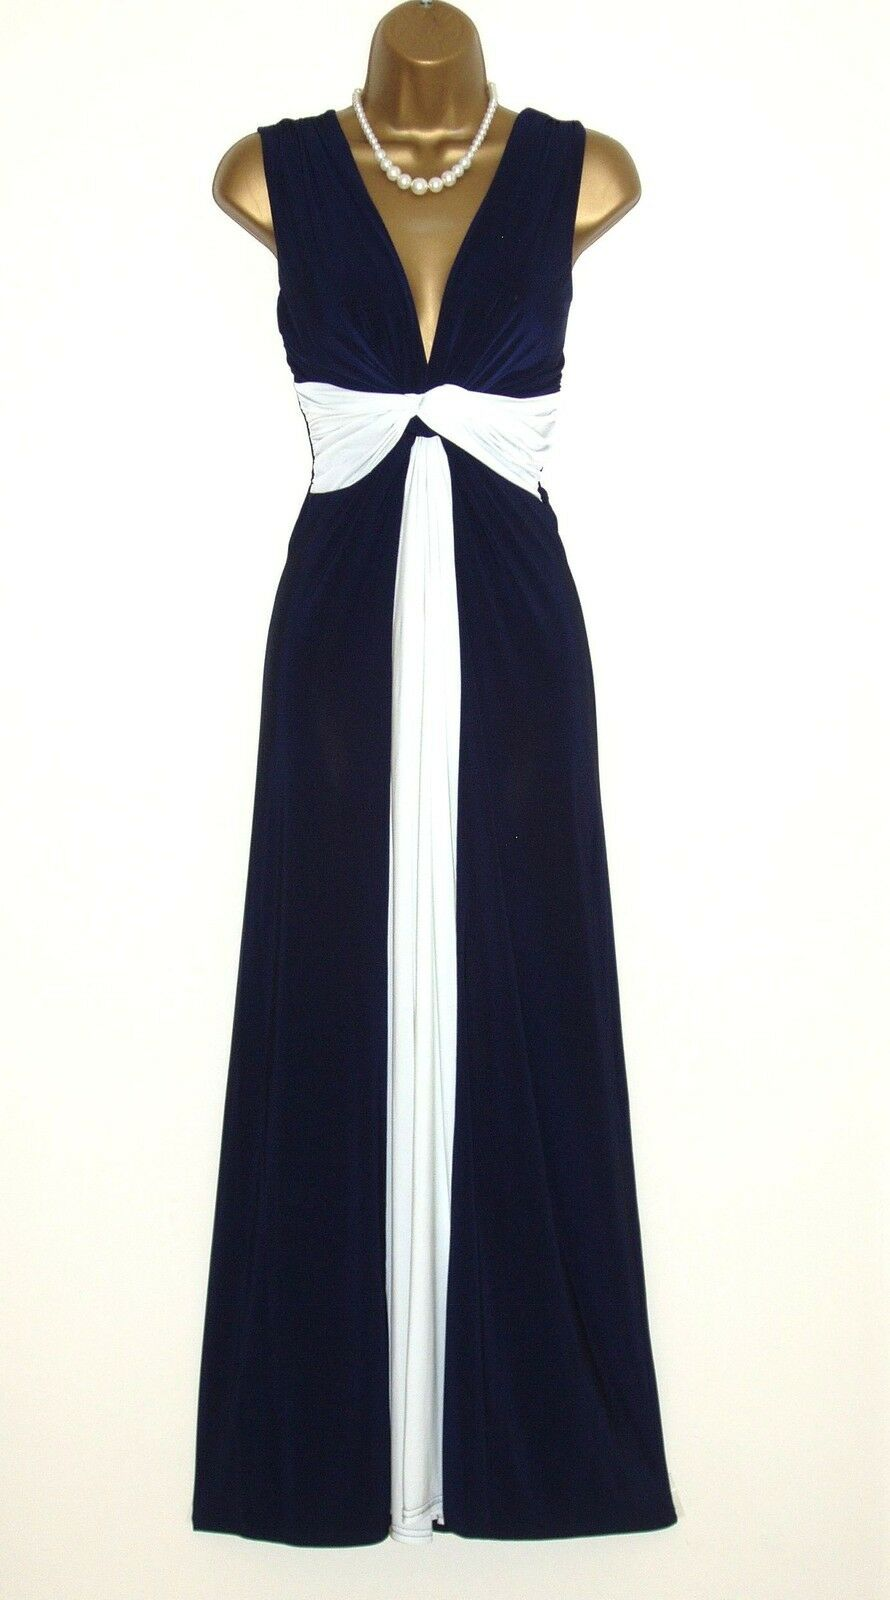 Long Navy Cream Grecian Knot Panel Maxi Evening Party Dress Prom-Ball-Cruise